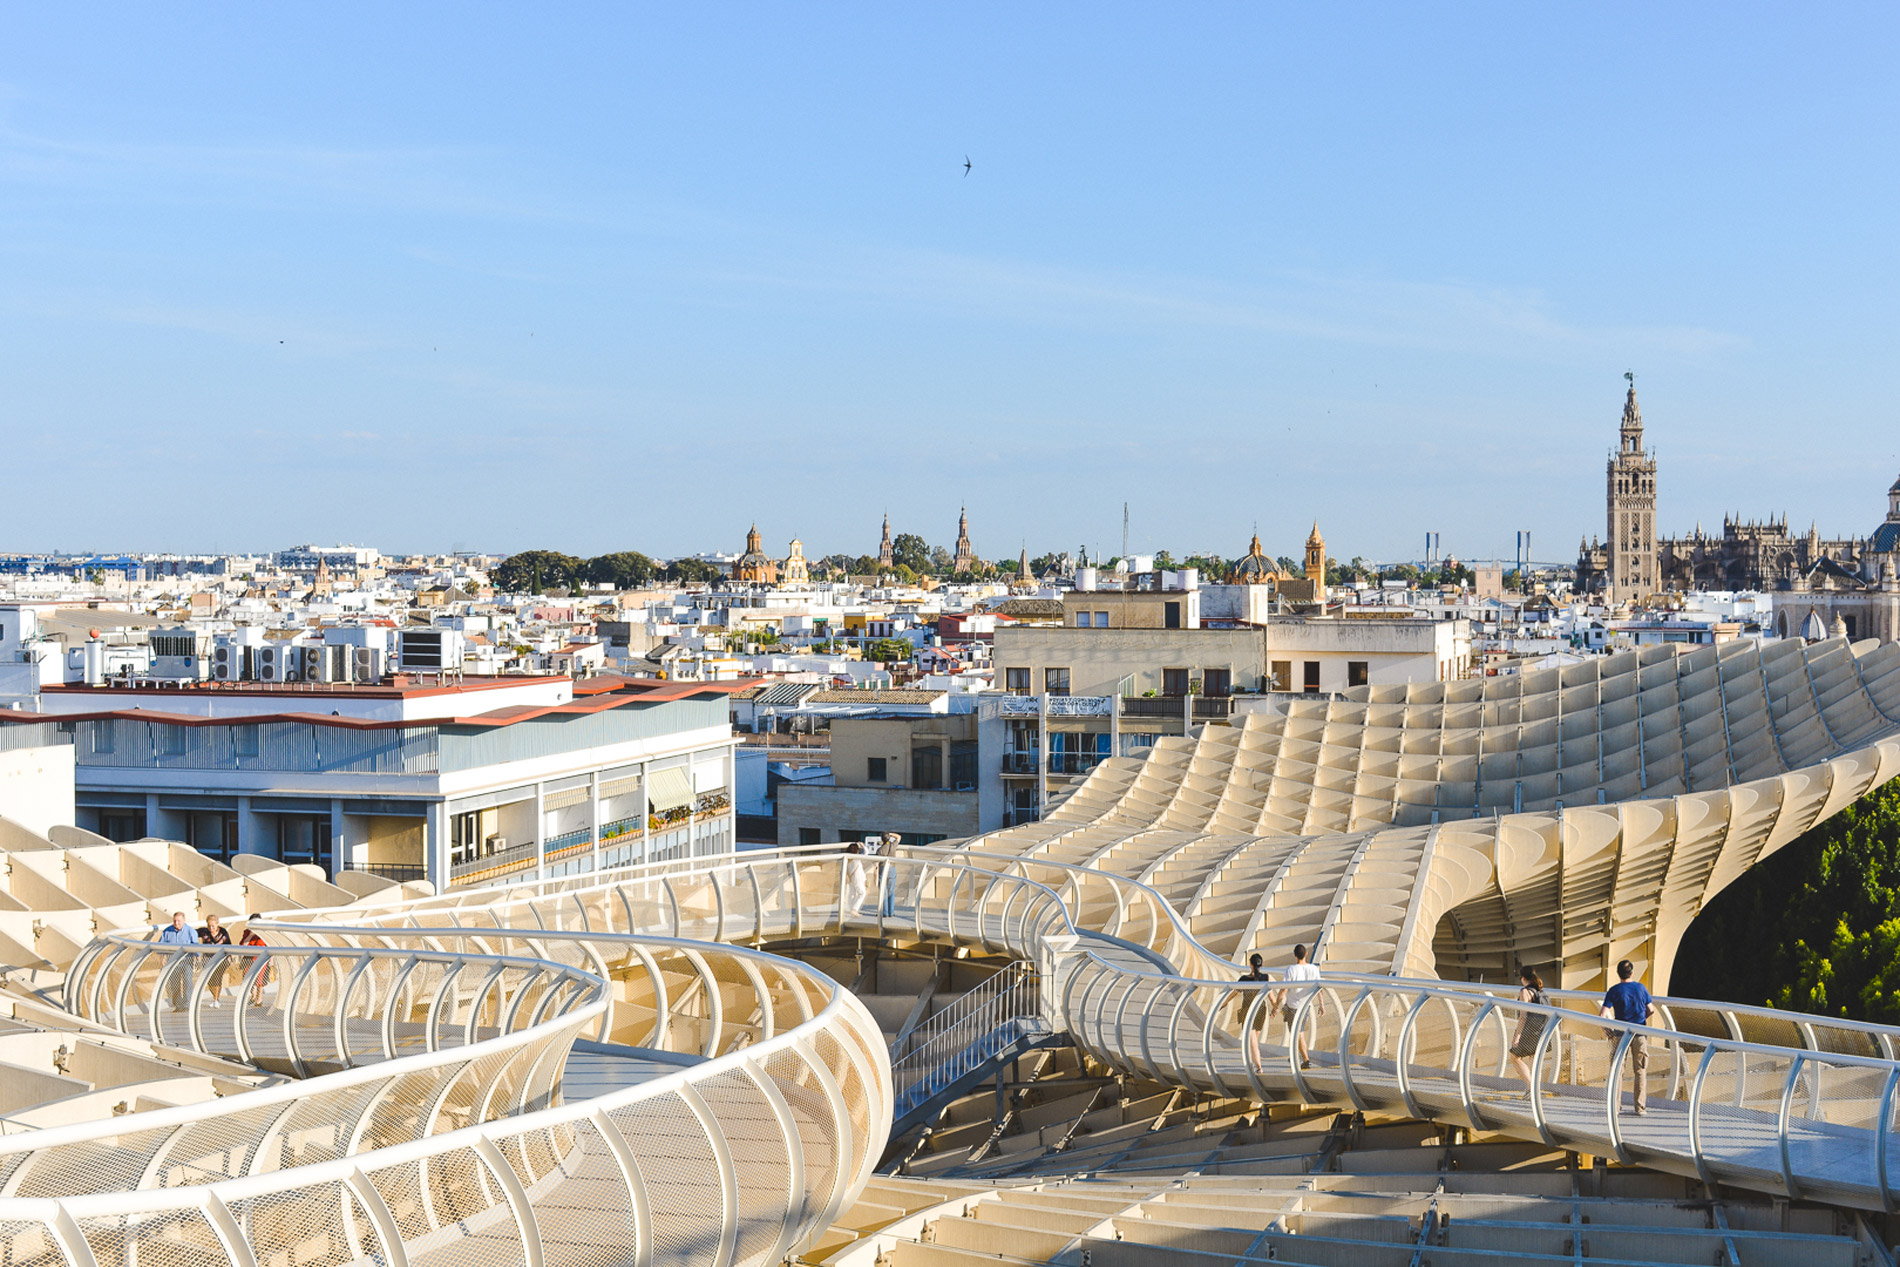 The Metropol Parasol is the best place to get a view to Seville in Spain